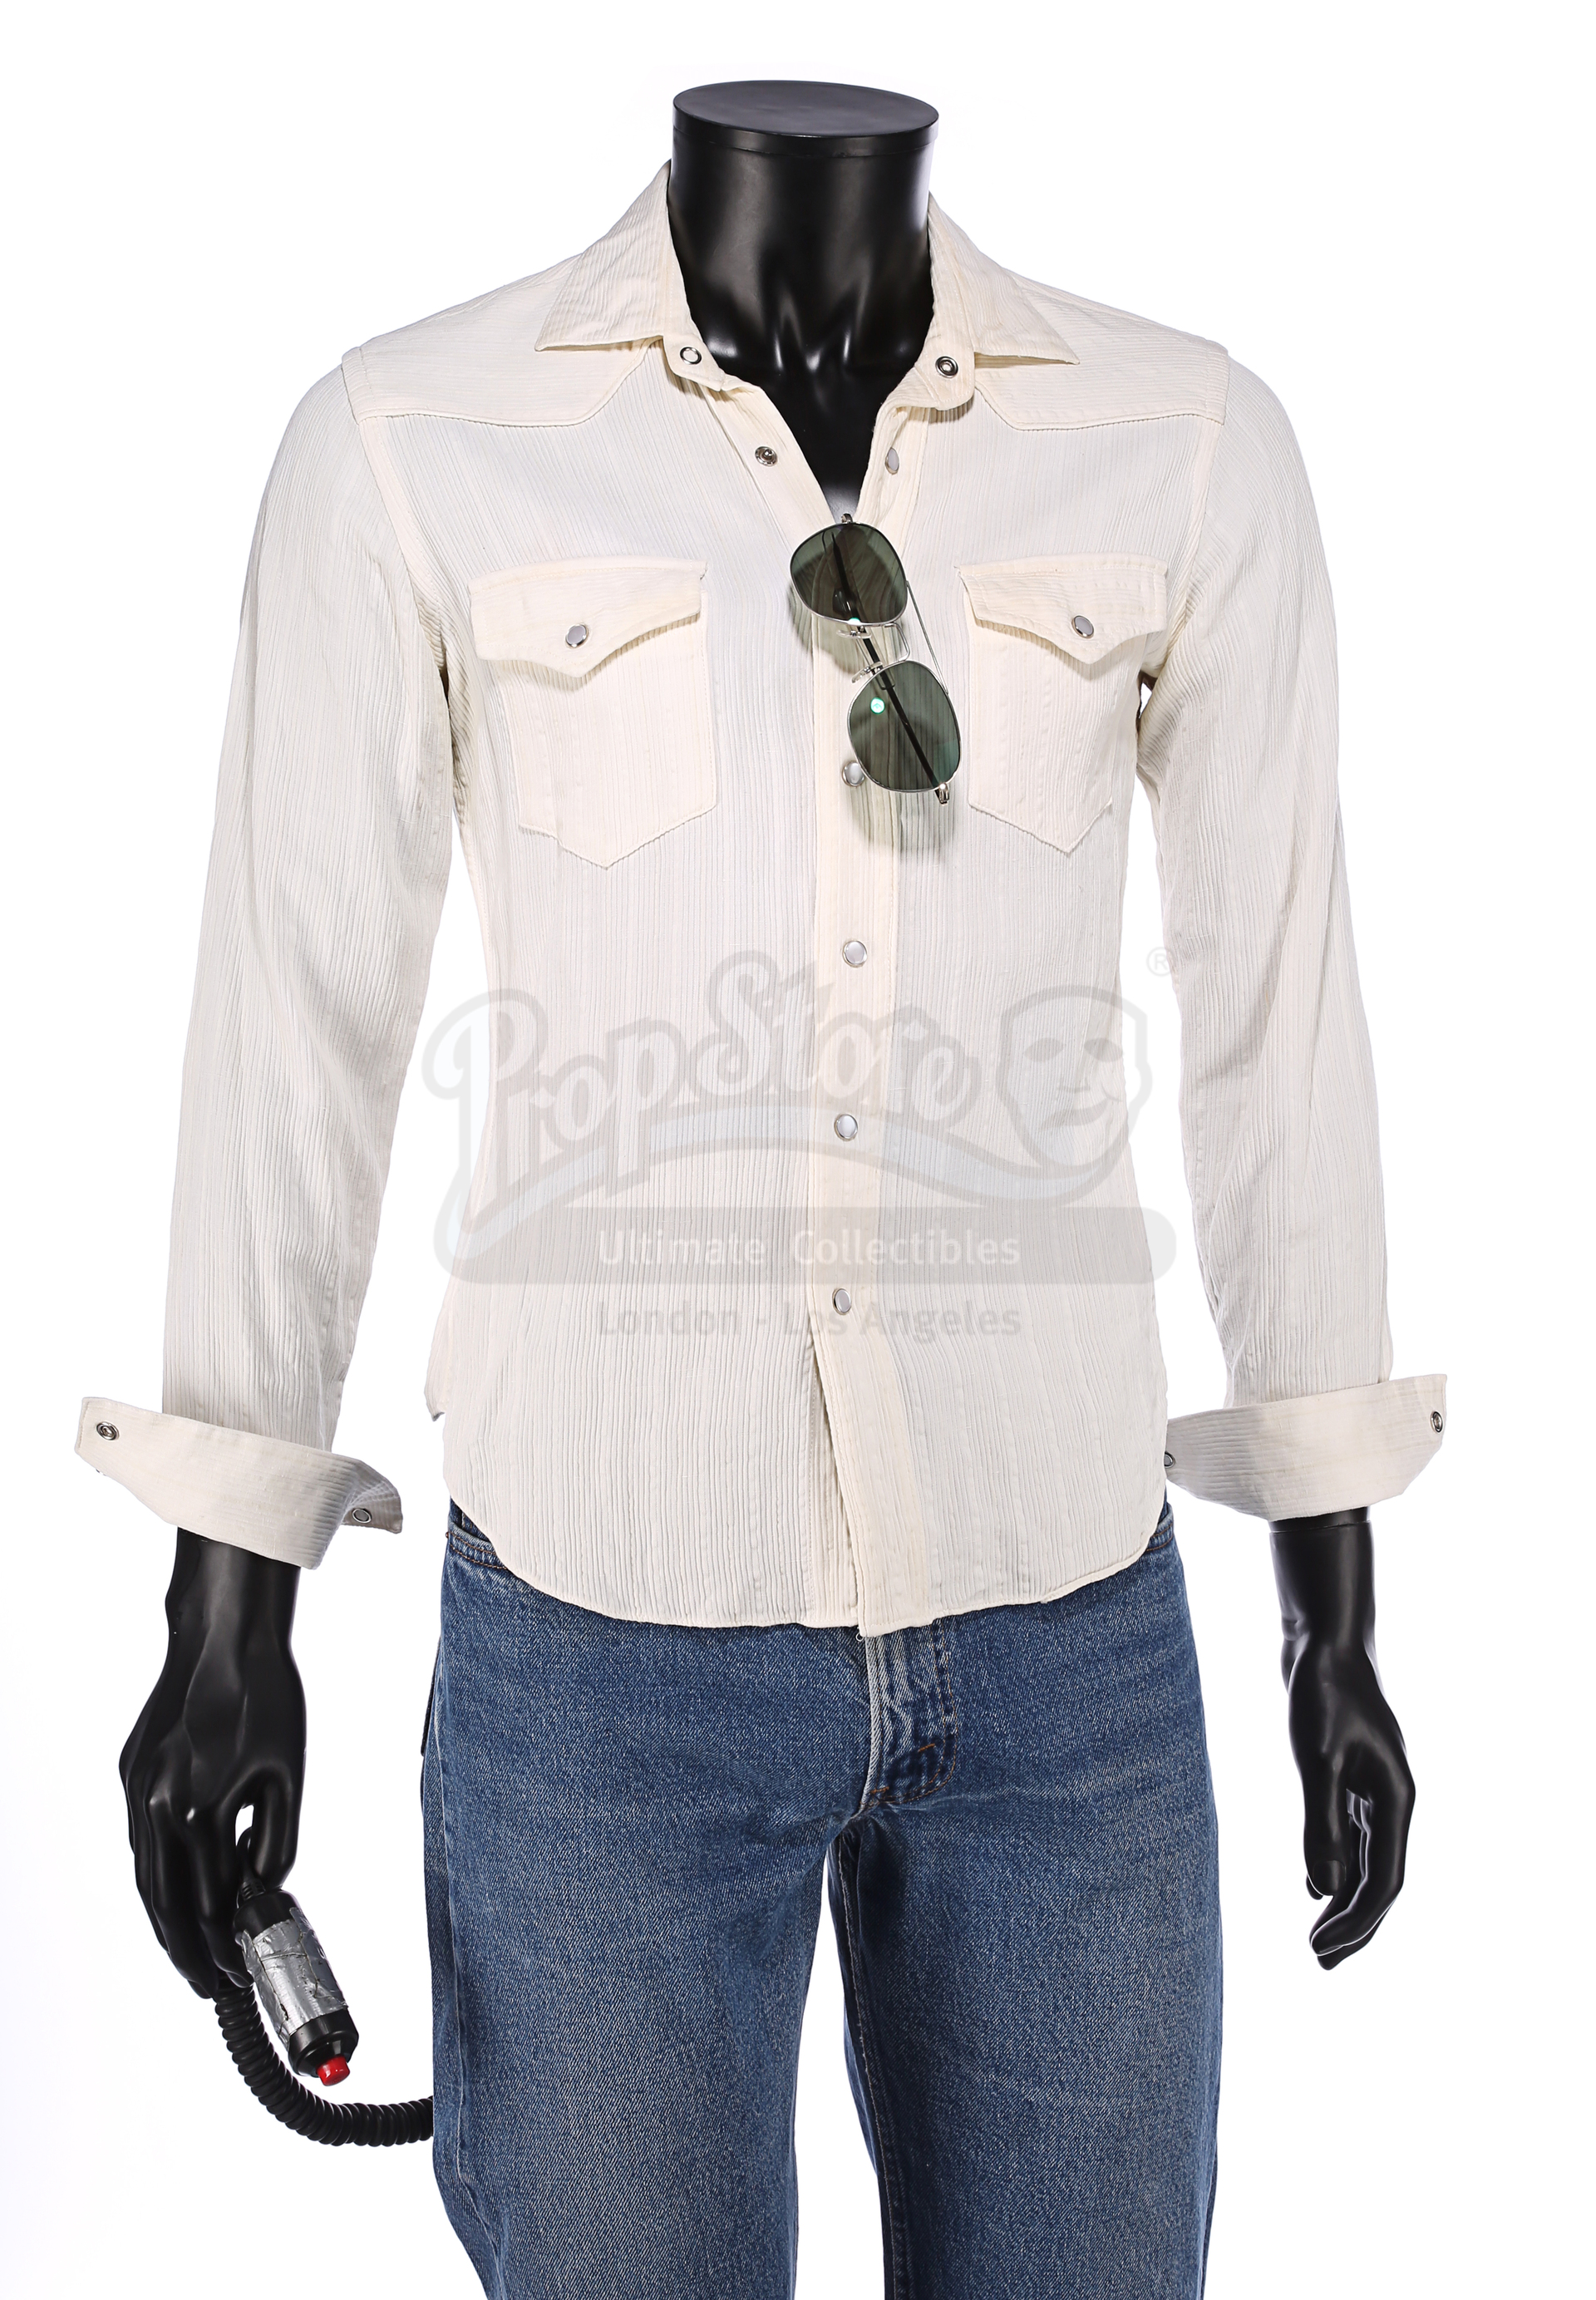 AMERICAN MADE (2017) - Barry Seal's (Tom Cruise) Costume - Image 7 of 23